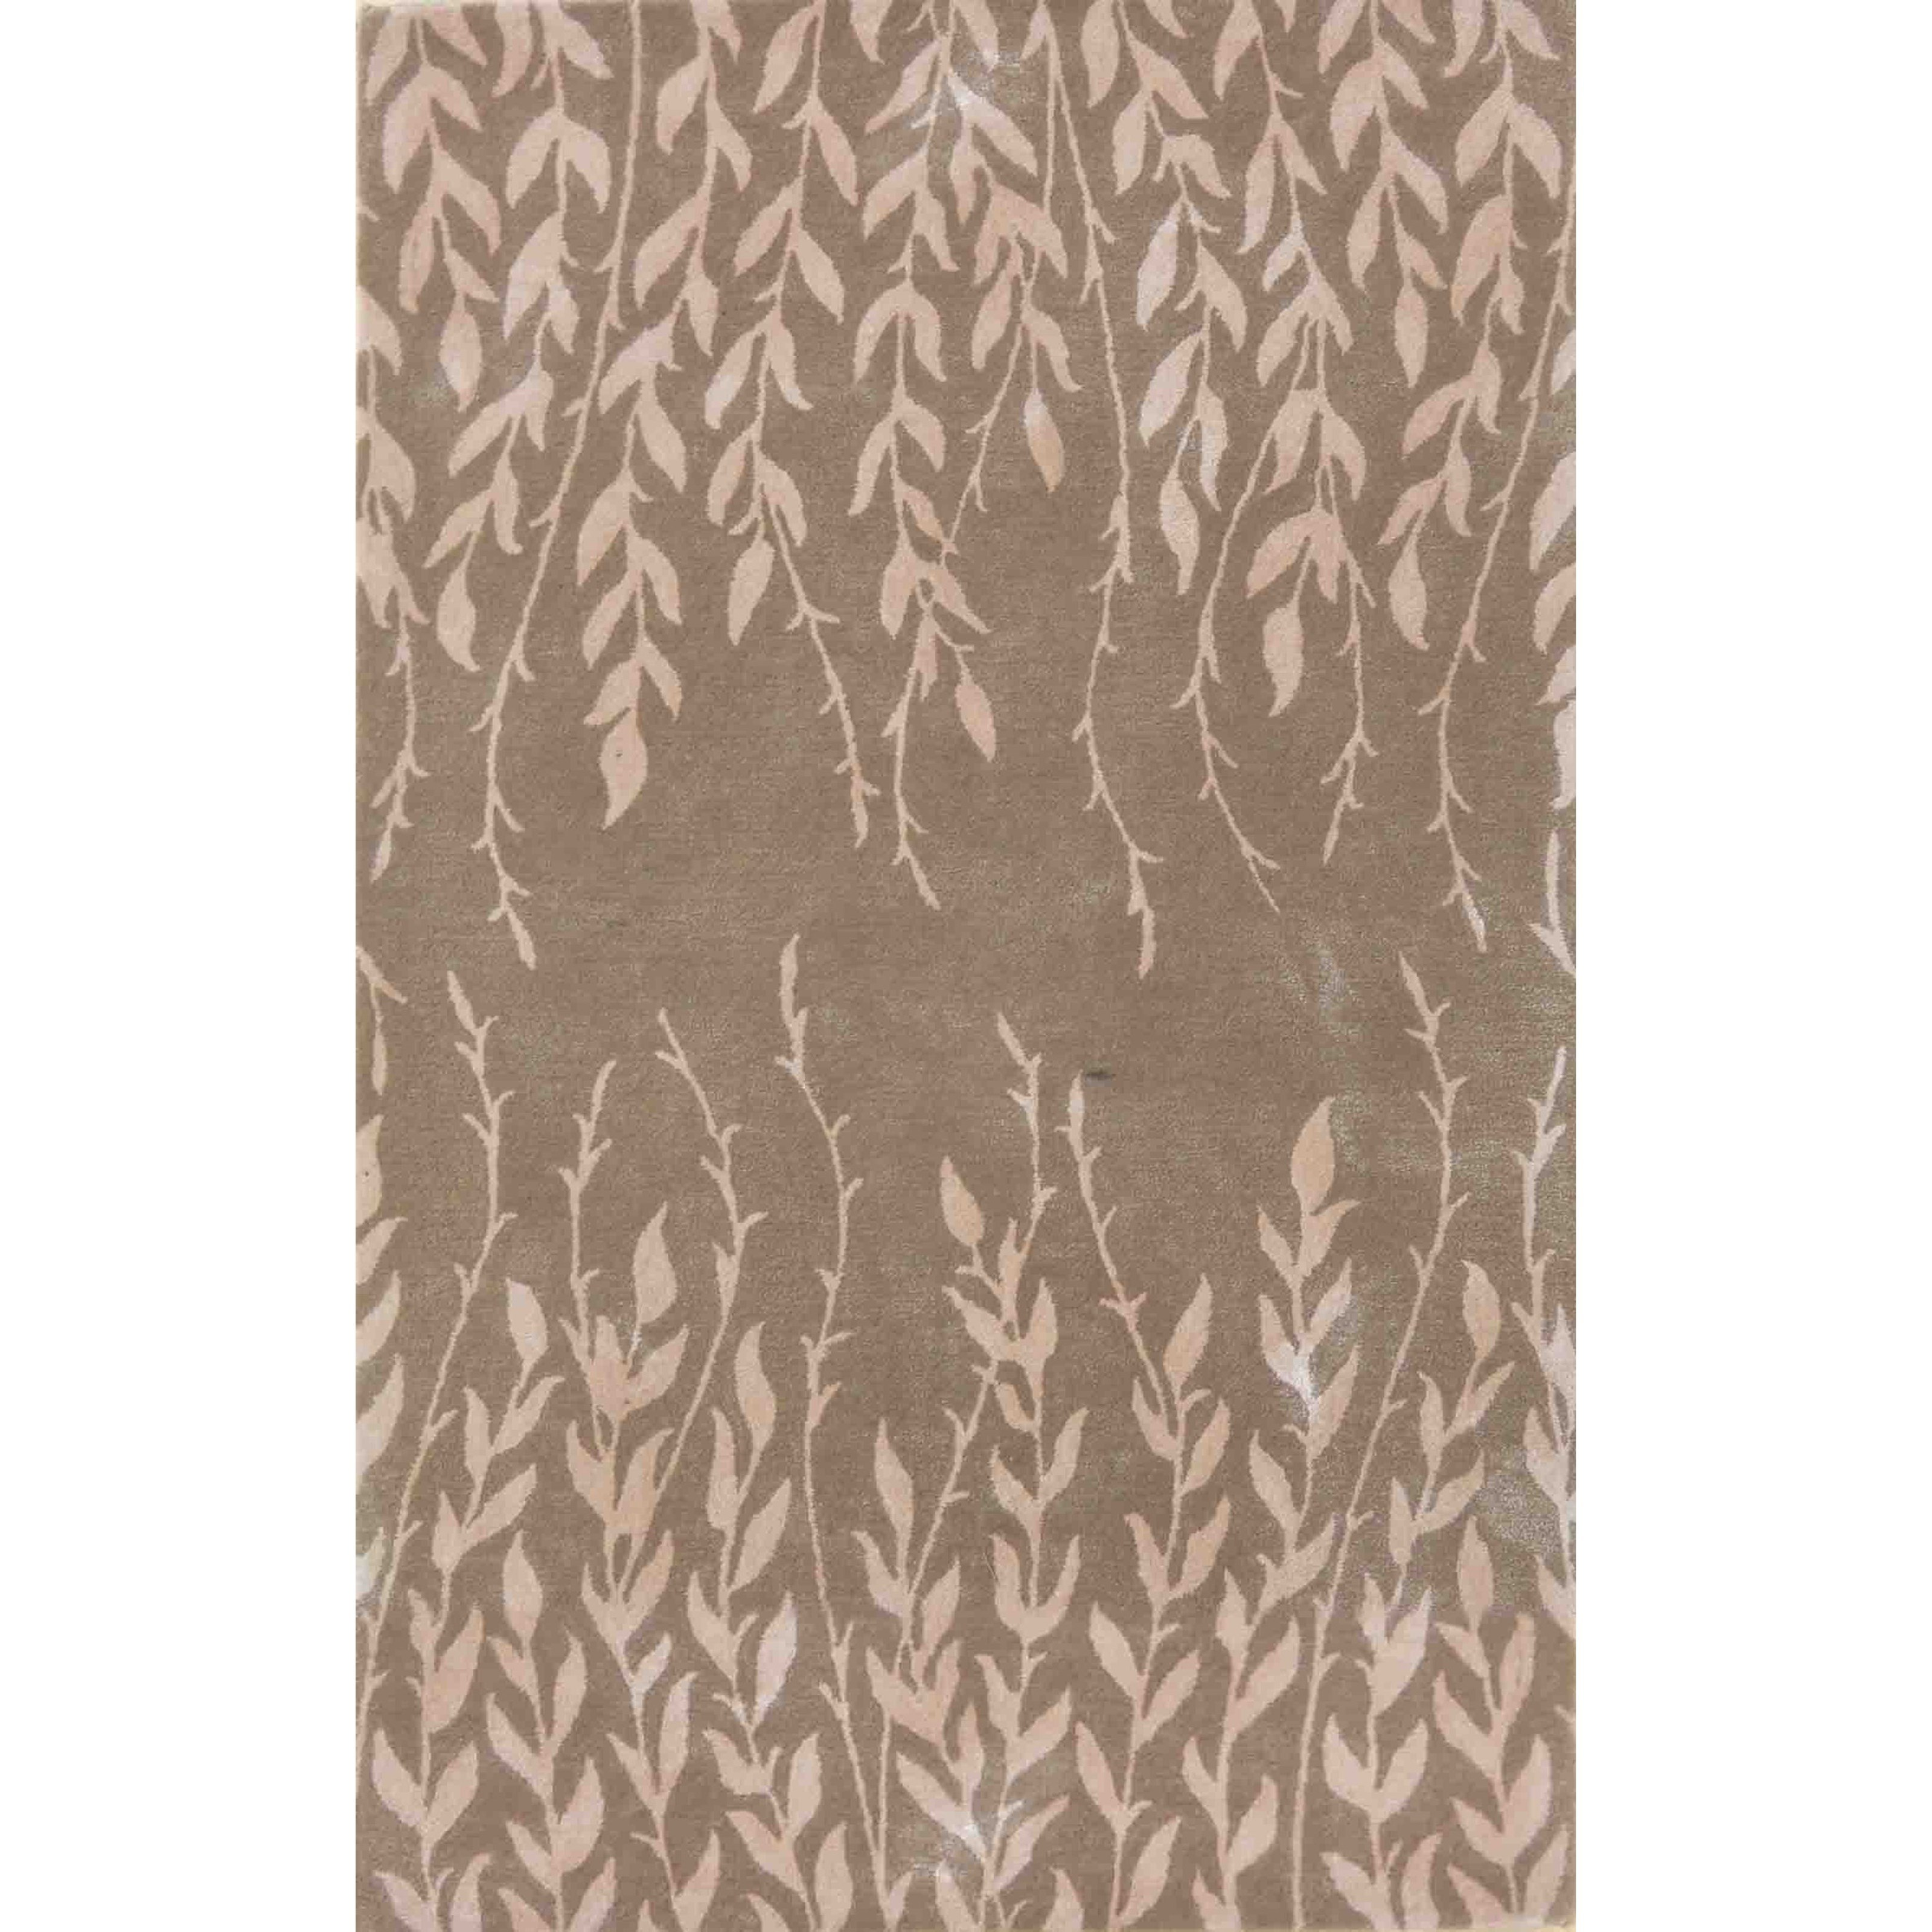 Bob Mackie Home 9' X 13' Beige Tranquility Area Rug by Kas at Zak's Home